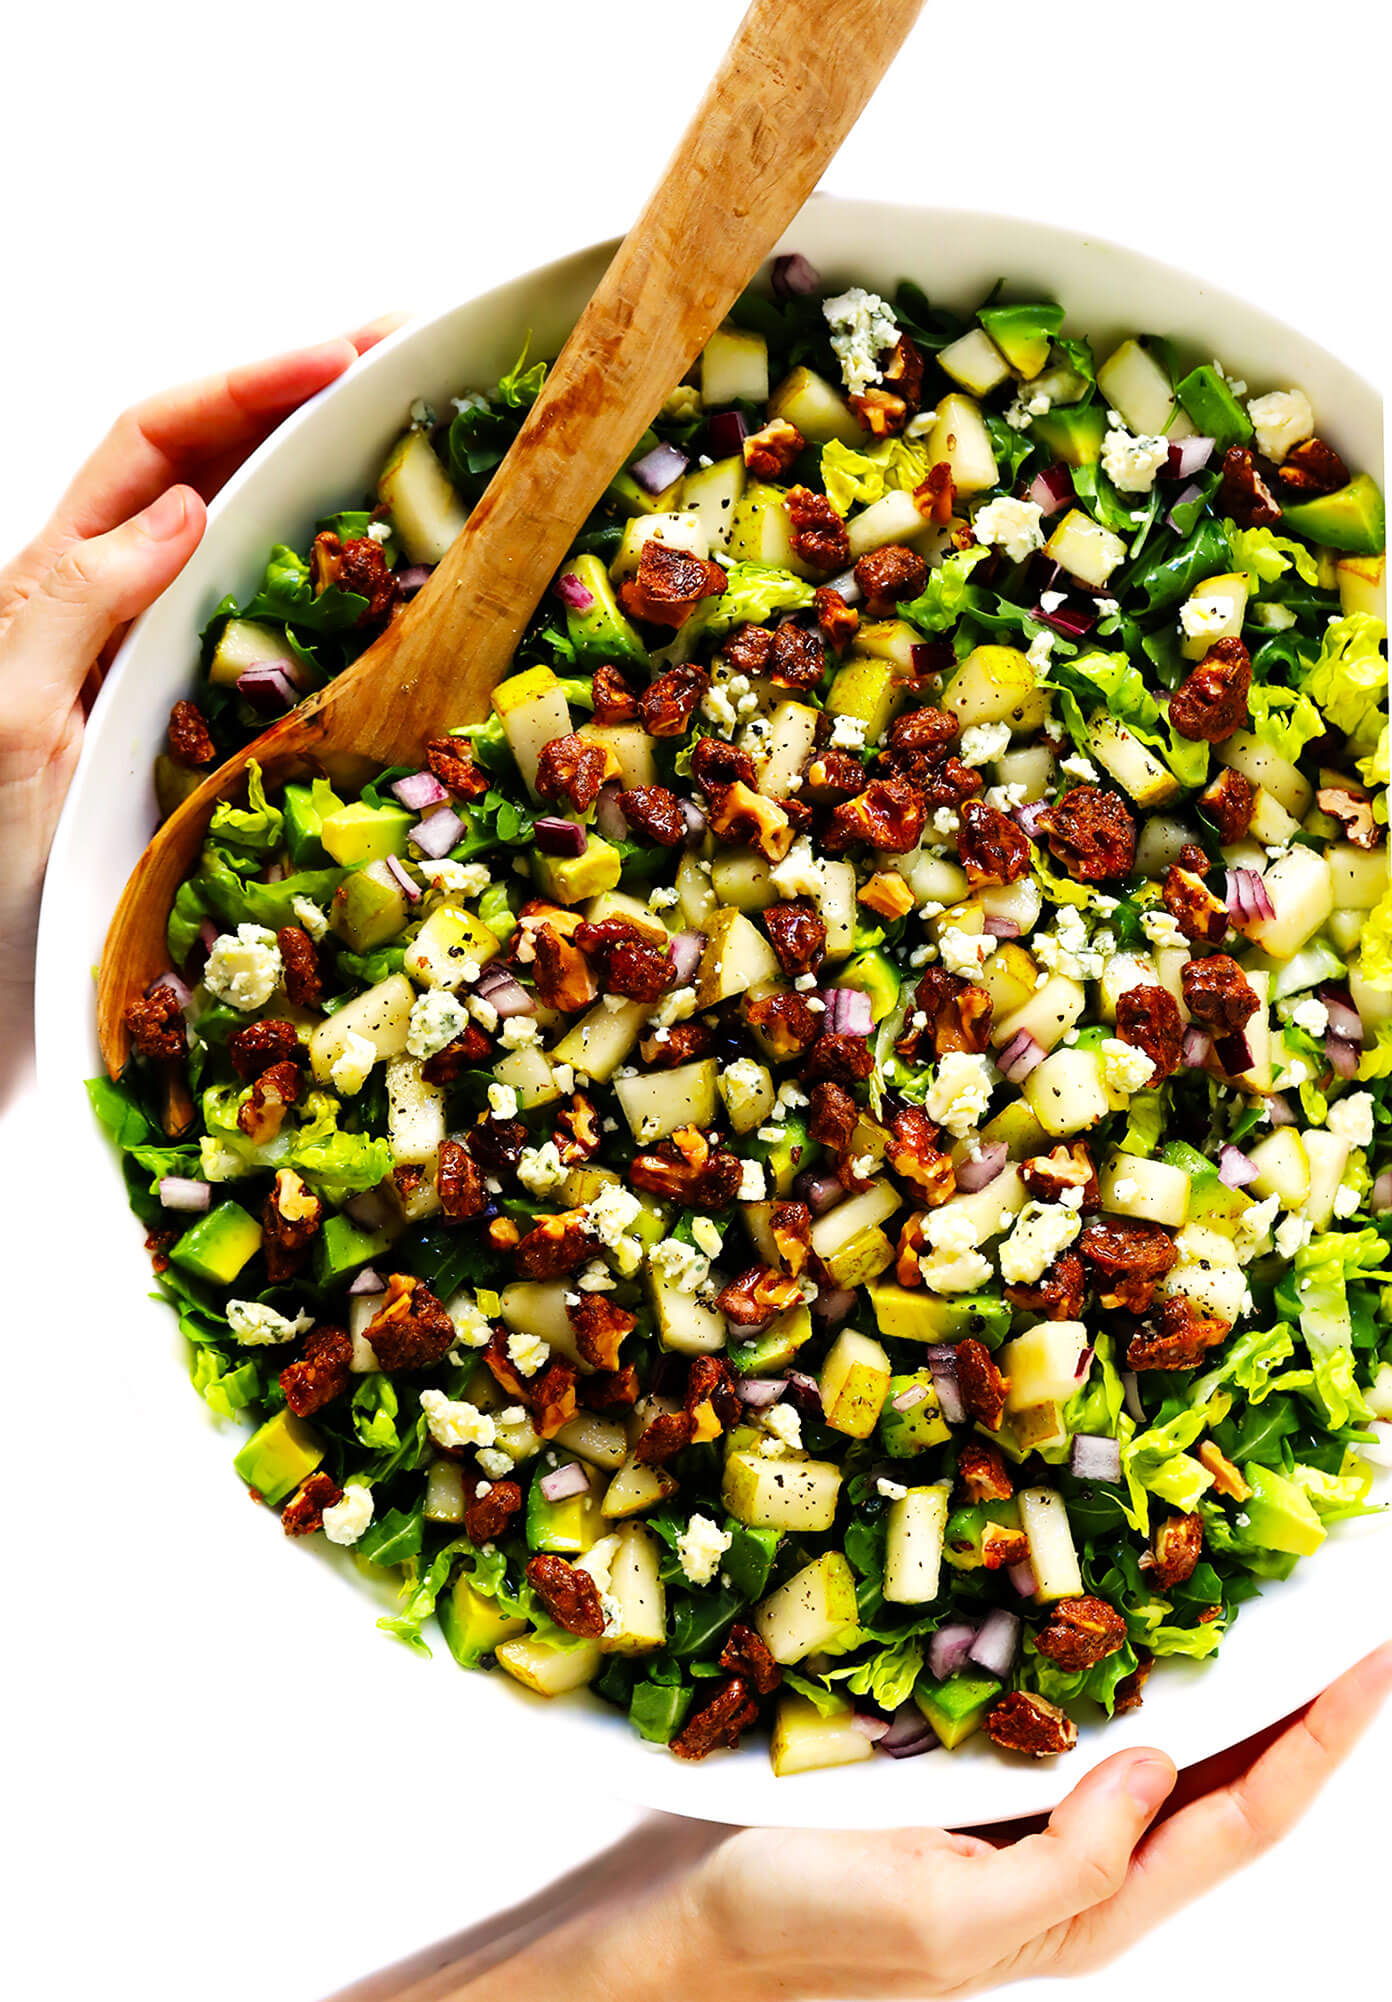 Easy Pear Salad Recipe with Gorgonzola and Candied Walnuts